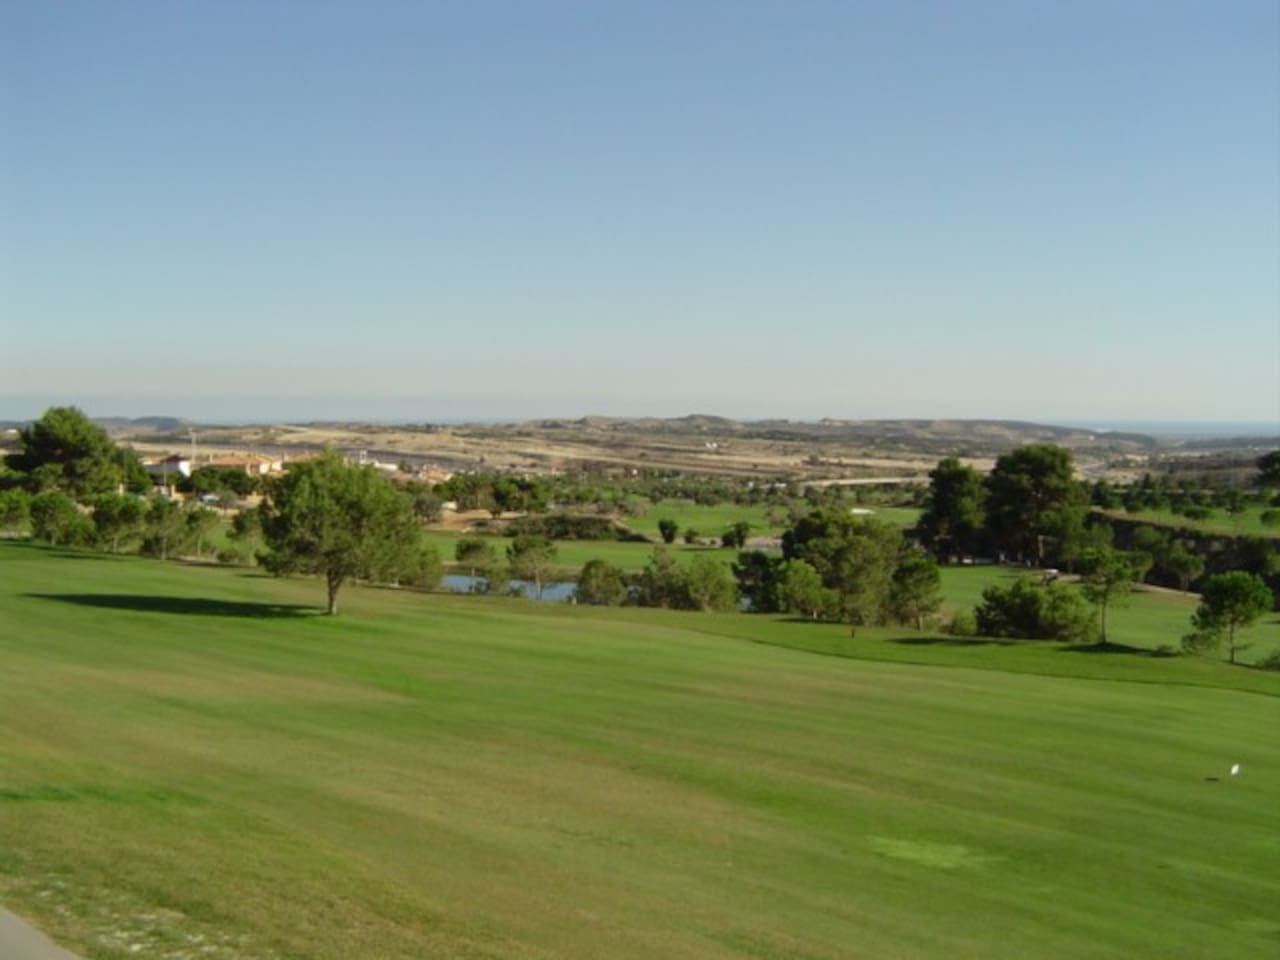 View across the golf course